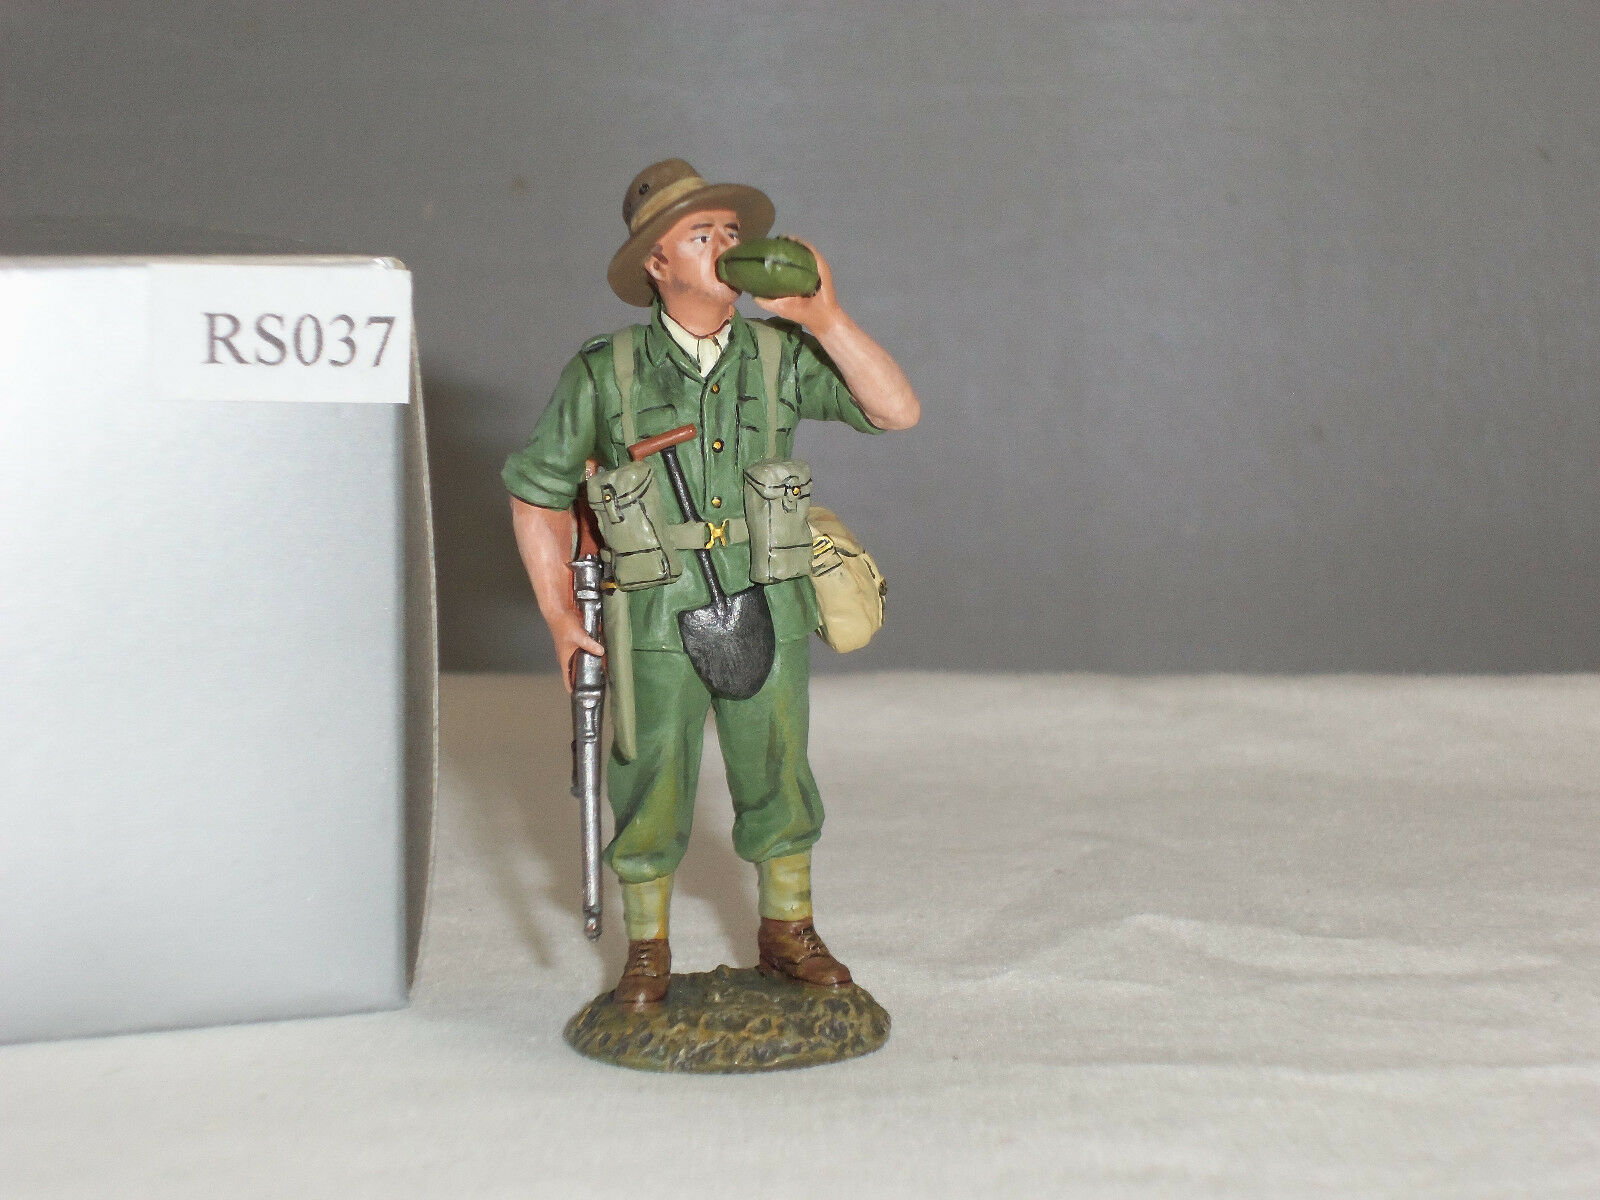 THOMAS GUNN RS037 AUSTRALIAN INFANTRY STANDING DRINKING METAL TOY SOLDIER FIGURE